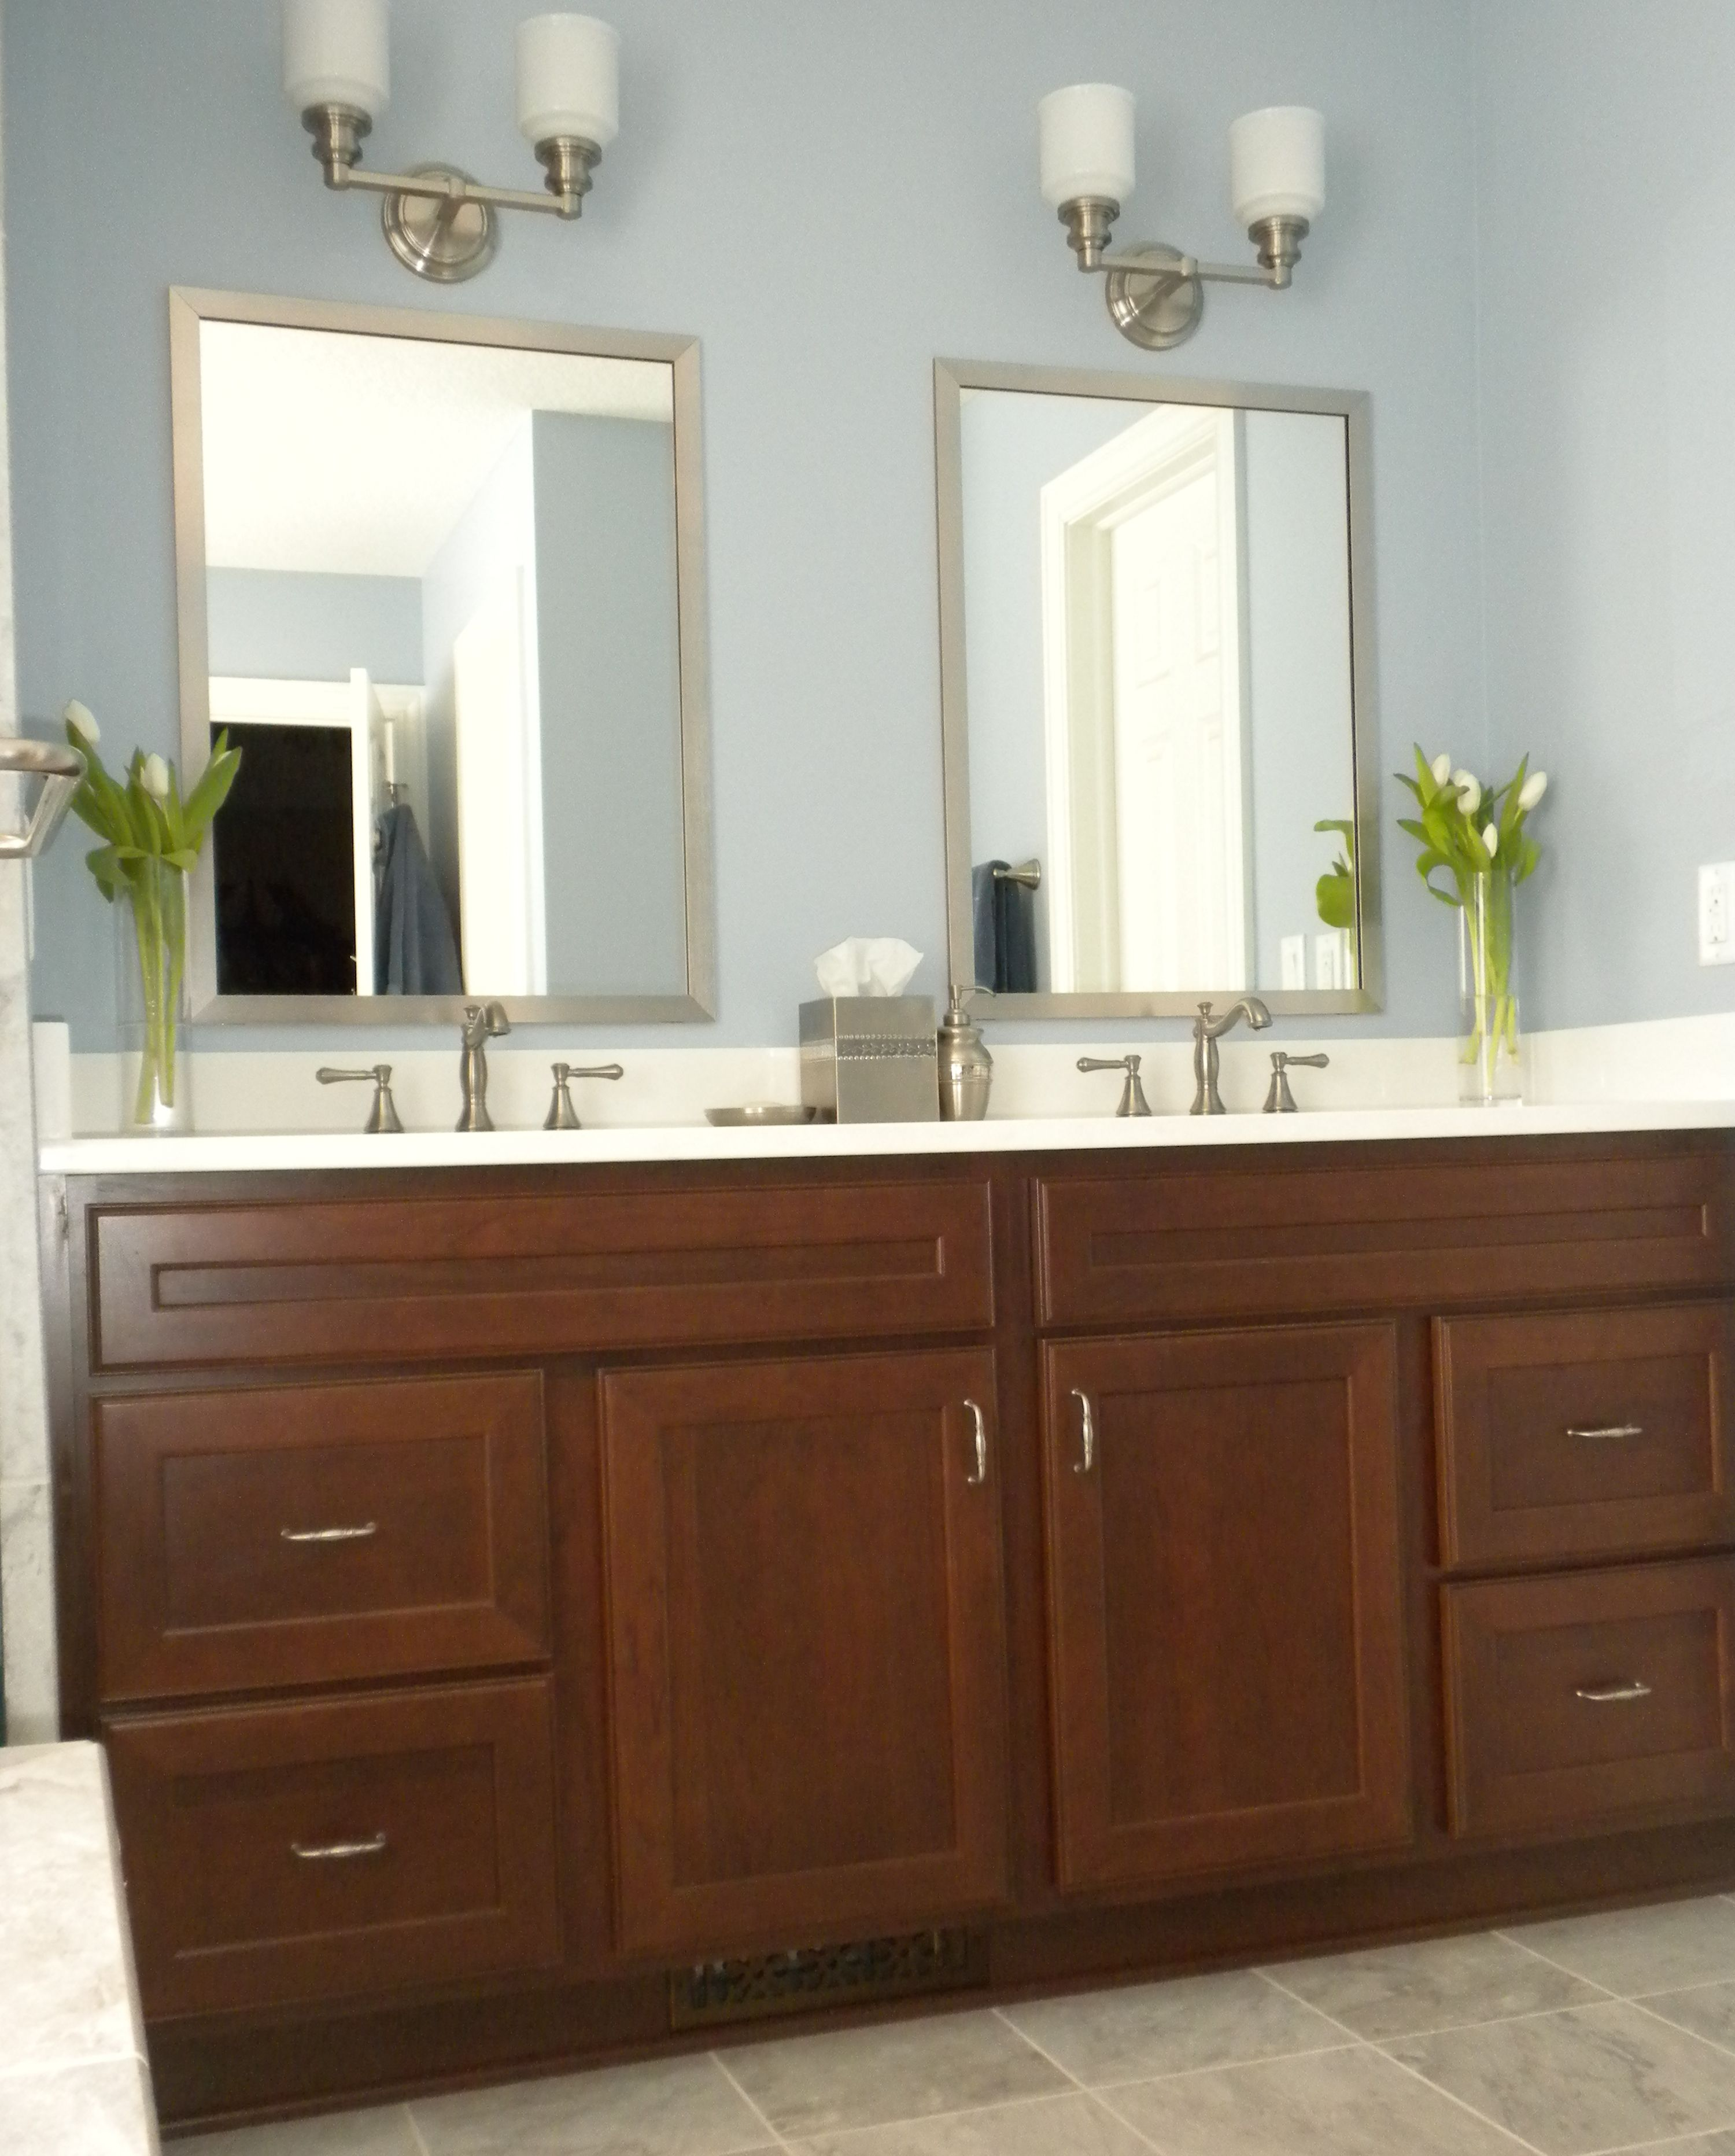 Project Profile From Blah To Spa Cherry Cabinets Bathroom